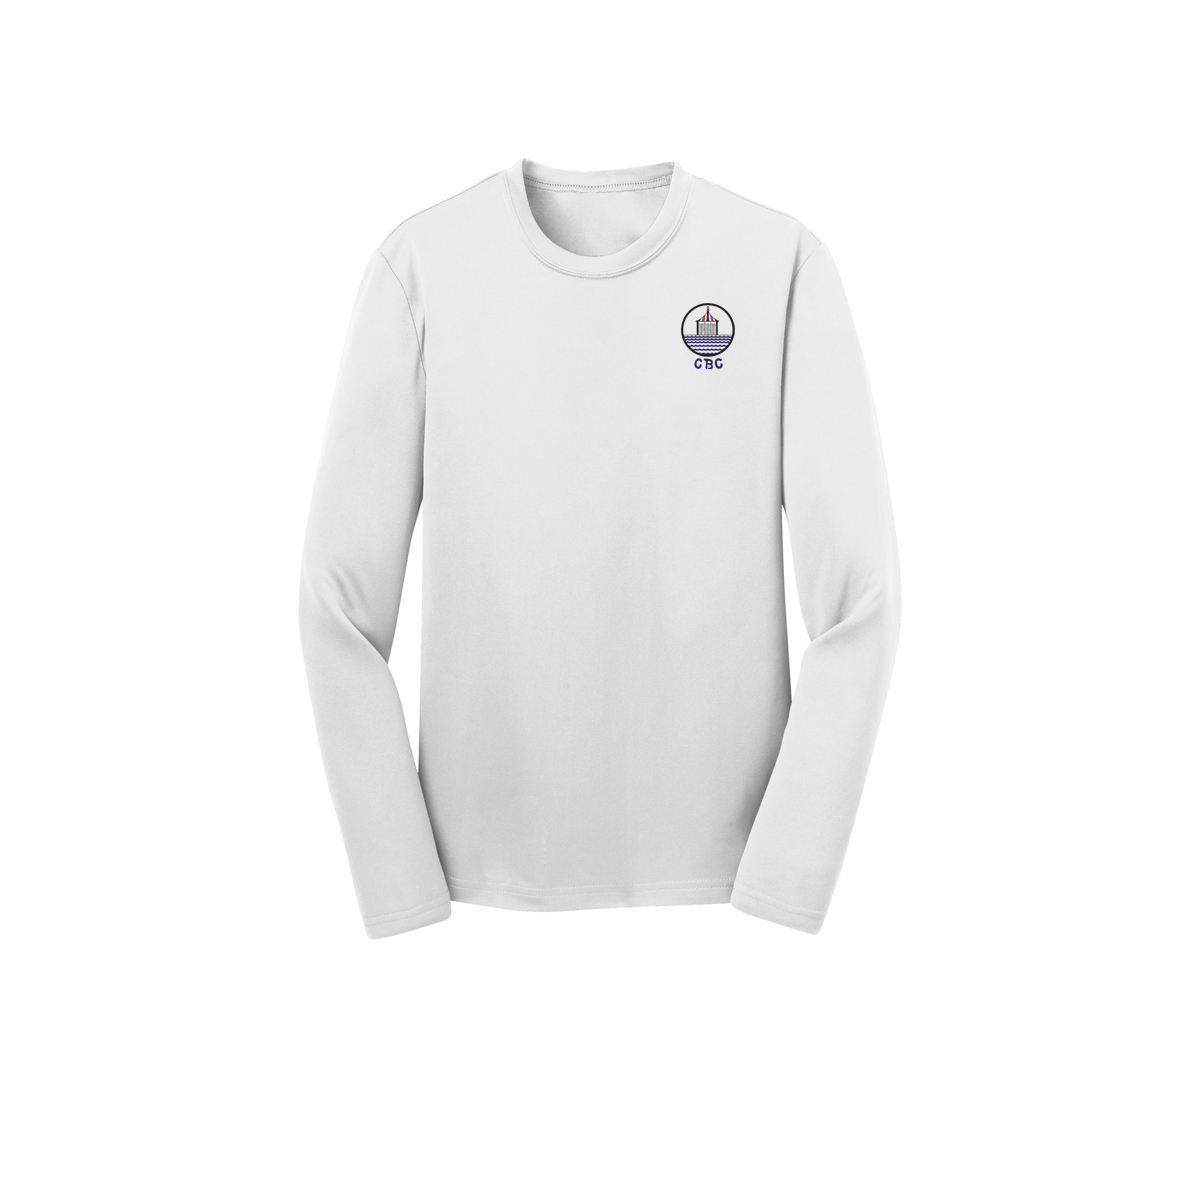 TEAM ONE NEWPORT K'S L/S TECH TEE - Around the Mark